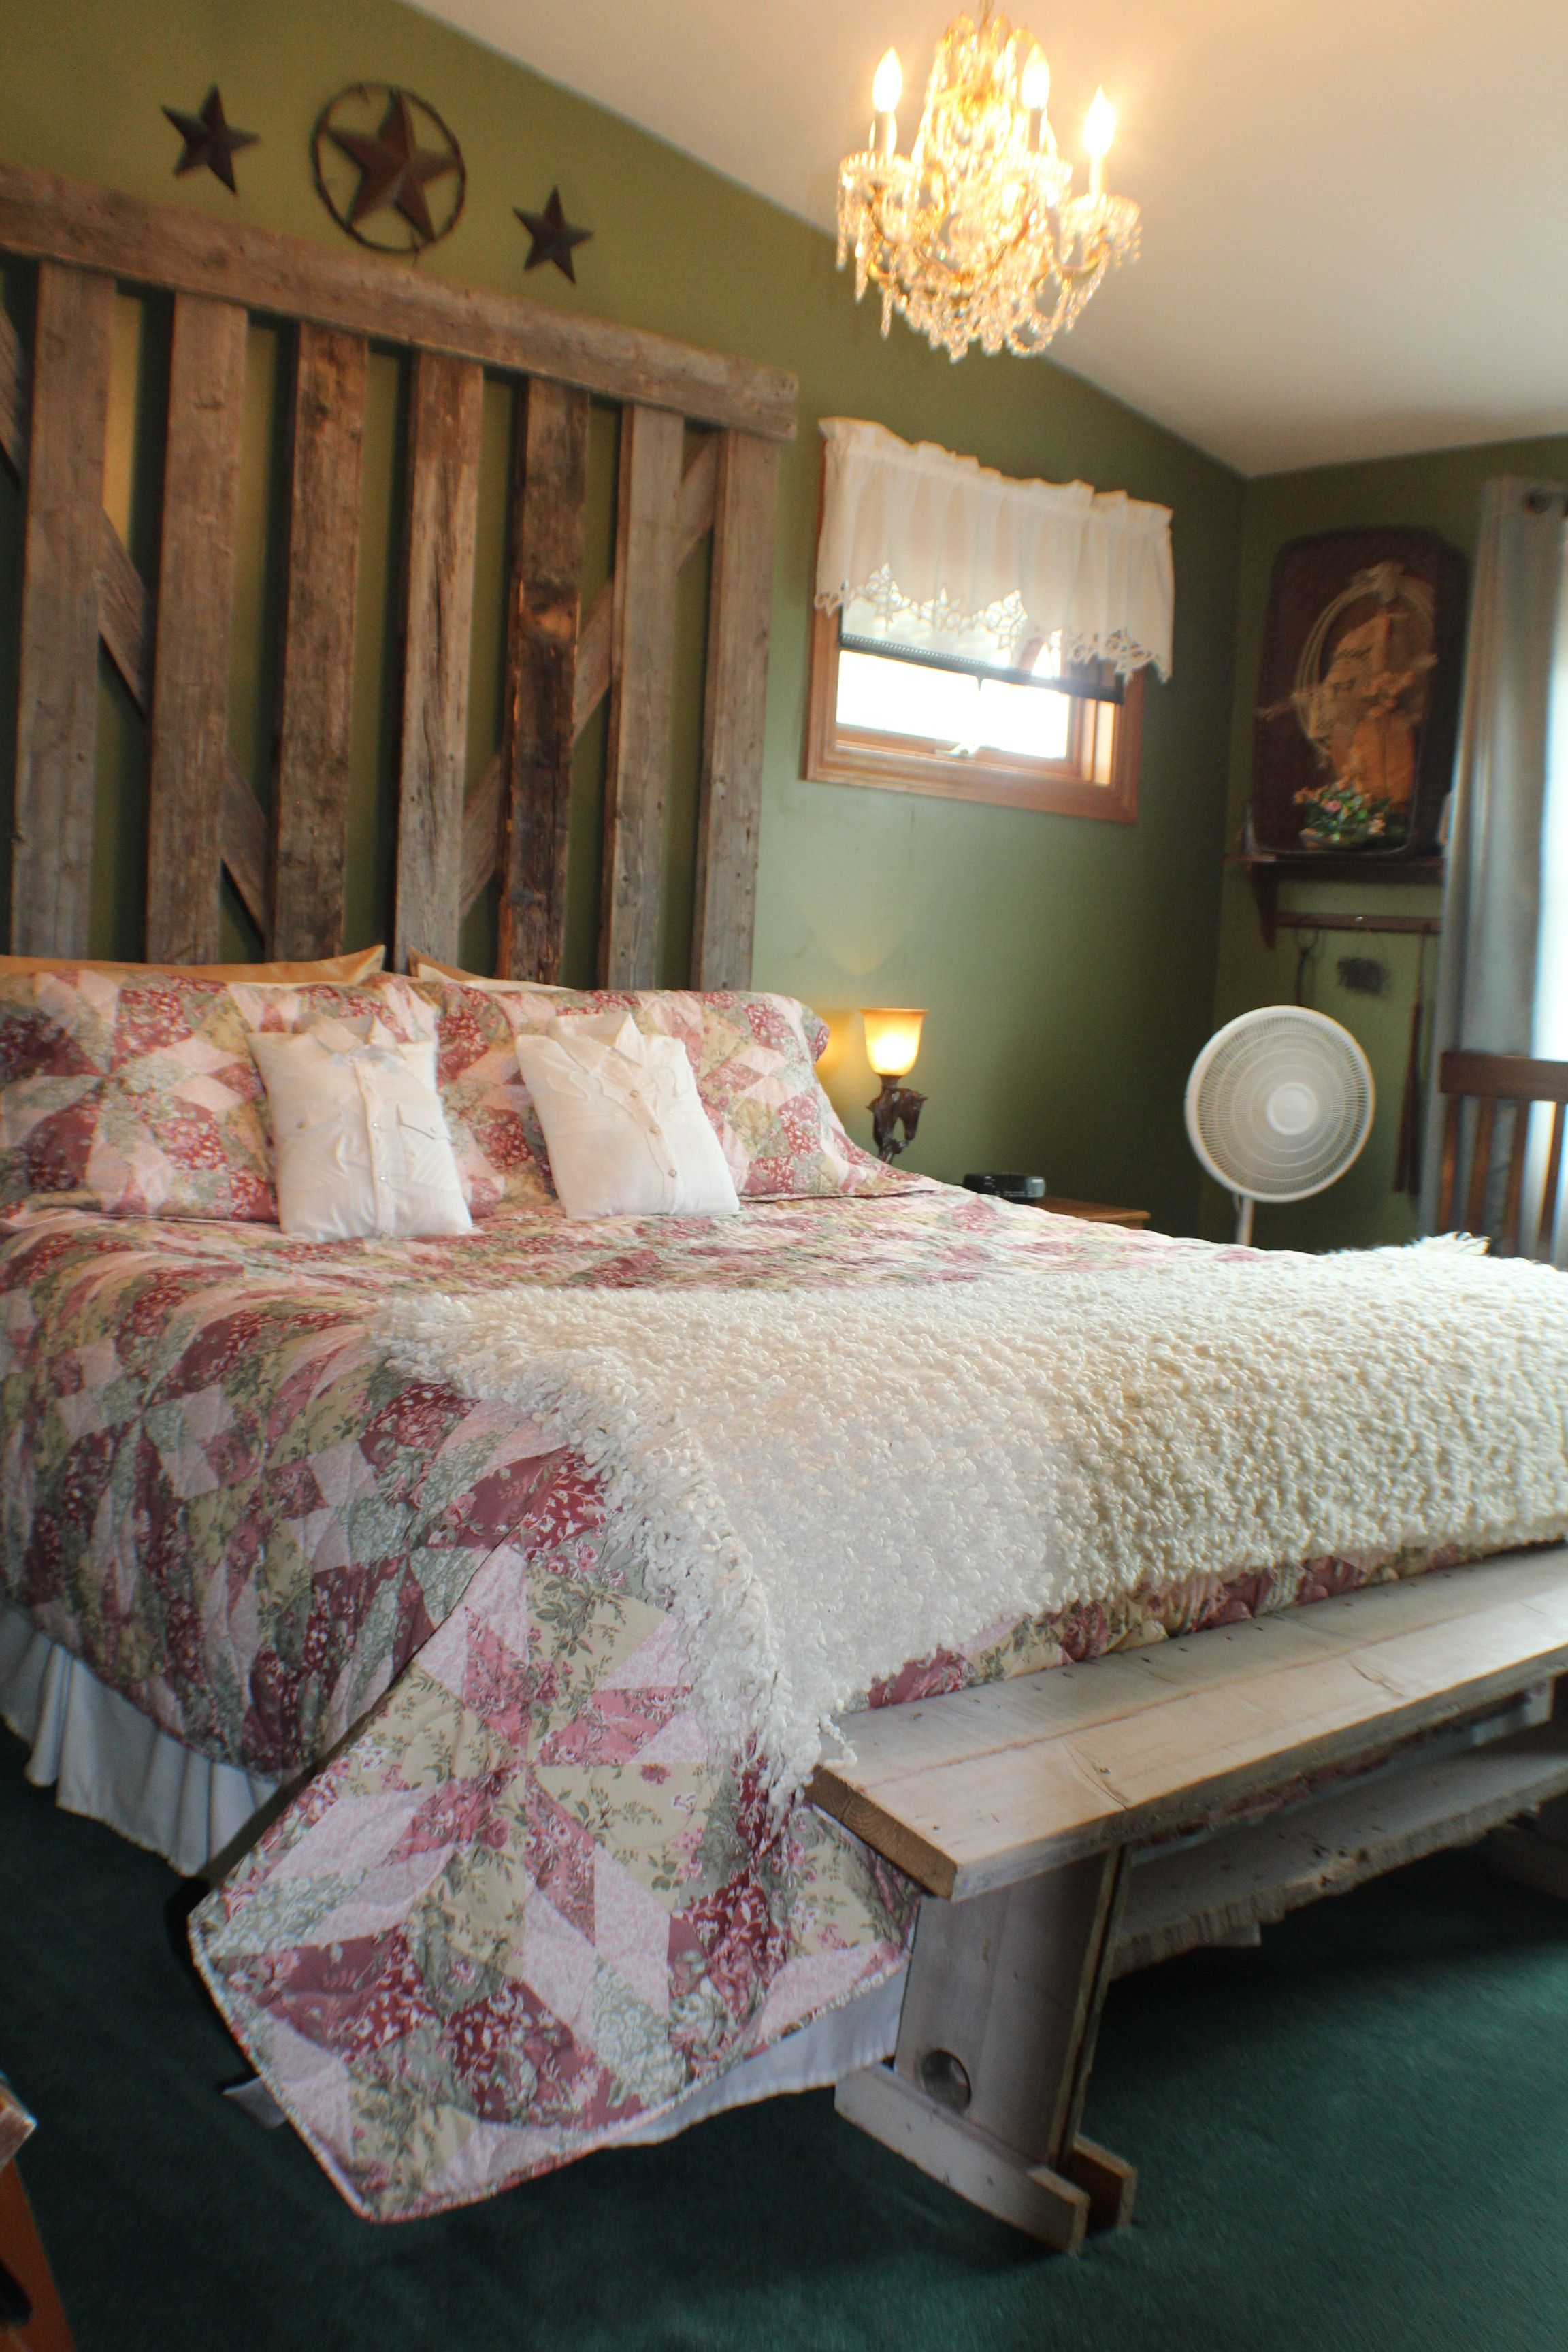 The Wild Rose room is a large, king sized room with